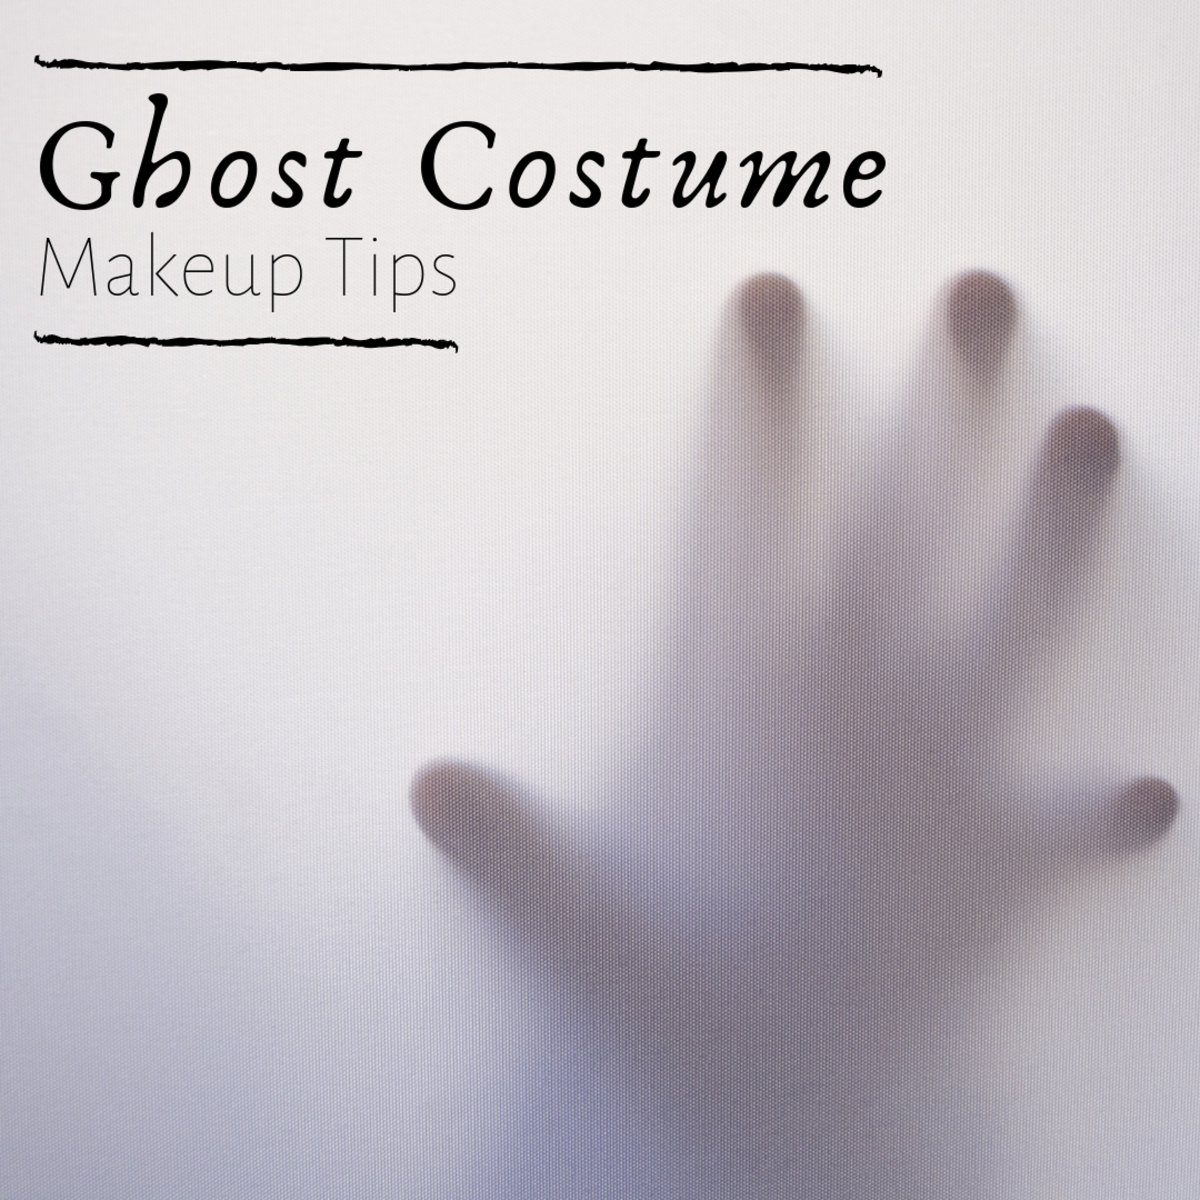 Learn how to take your ghost costume up a notch with creepy makeup.